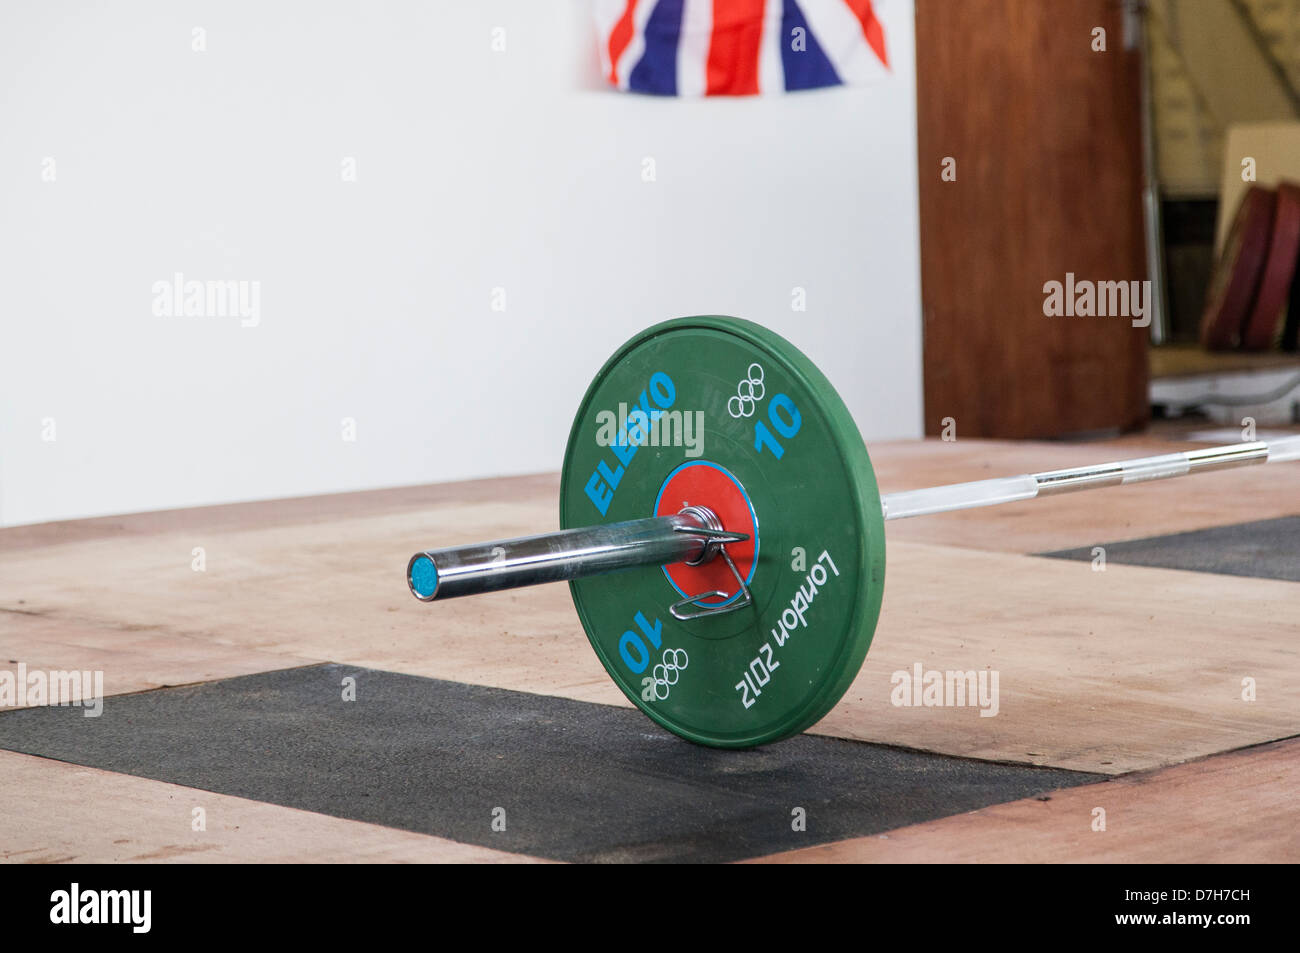 Weightlifting, London 2012  plates Olympic bar GB Flag British weightlifting - Stock Image